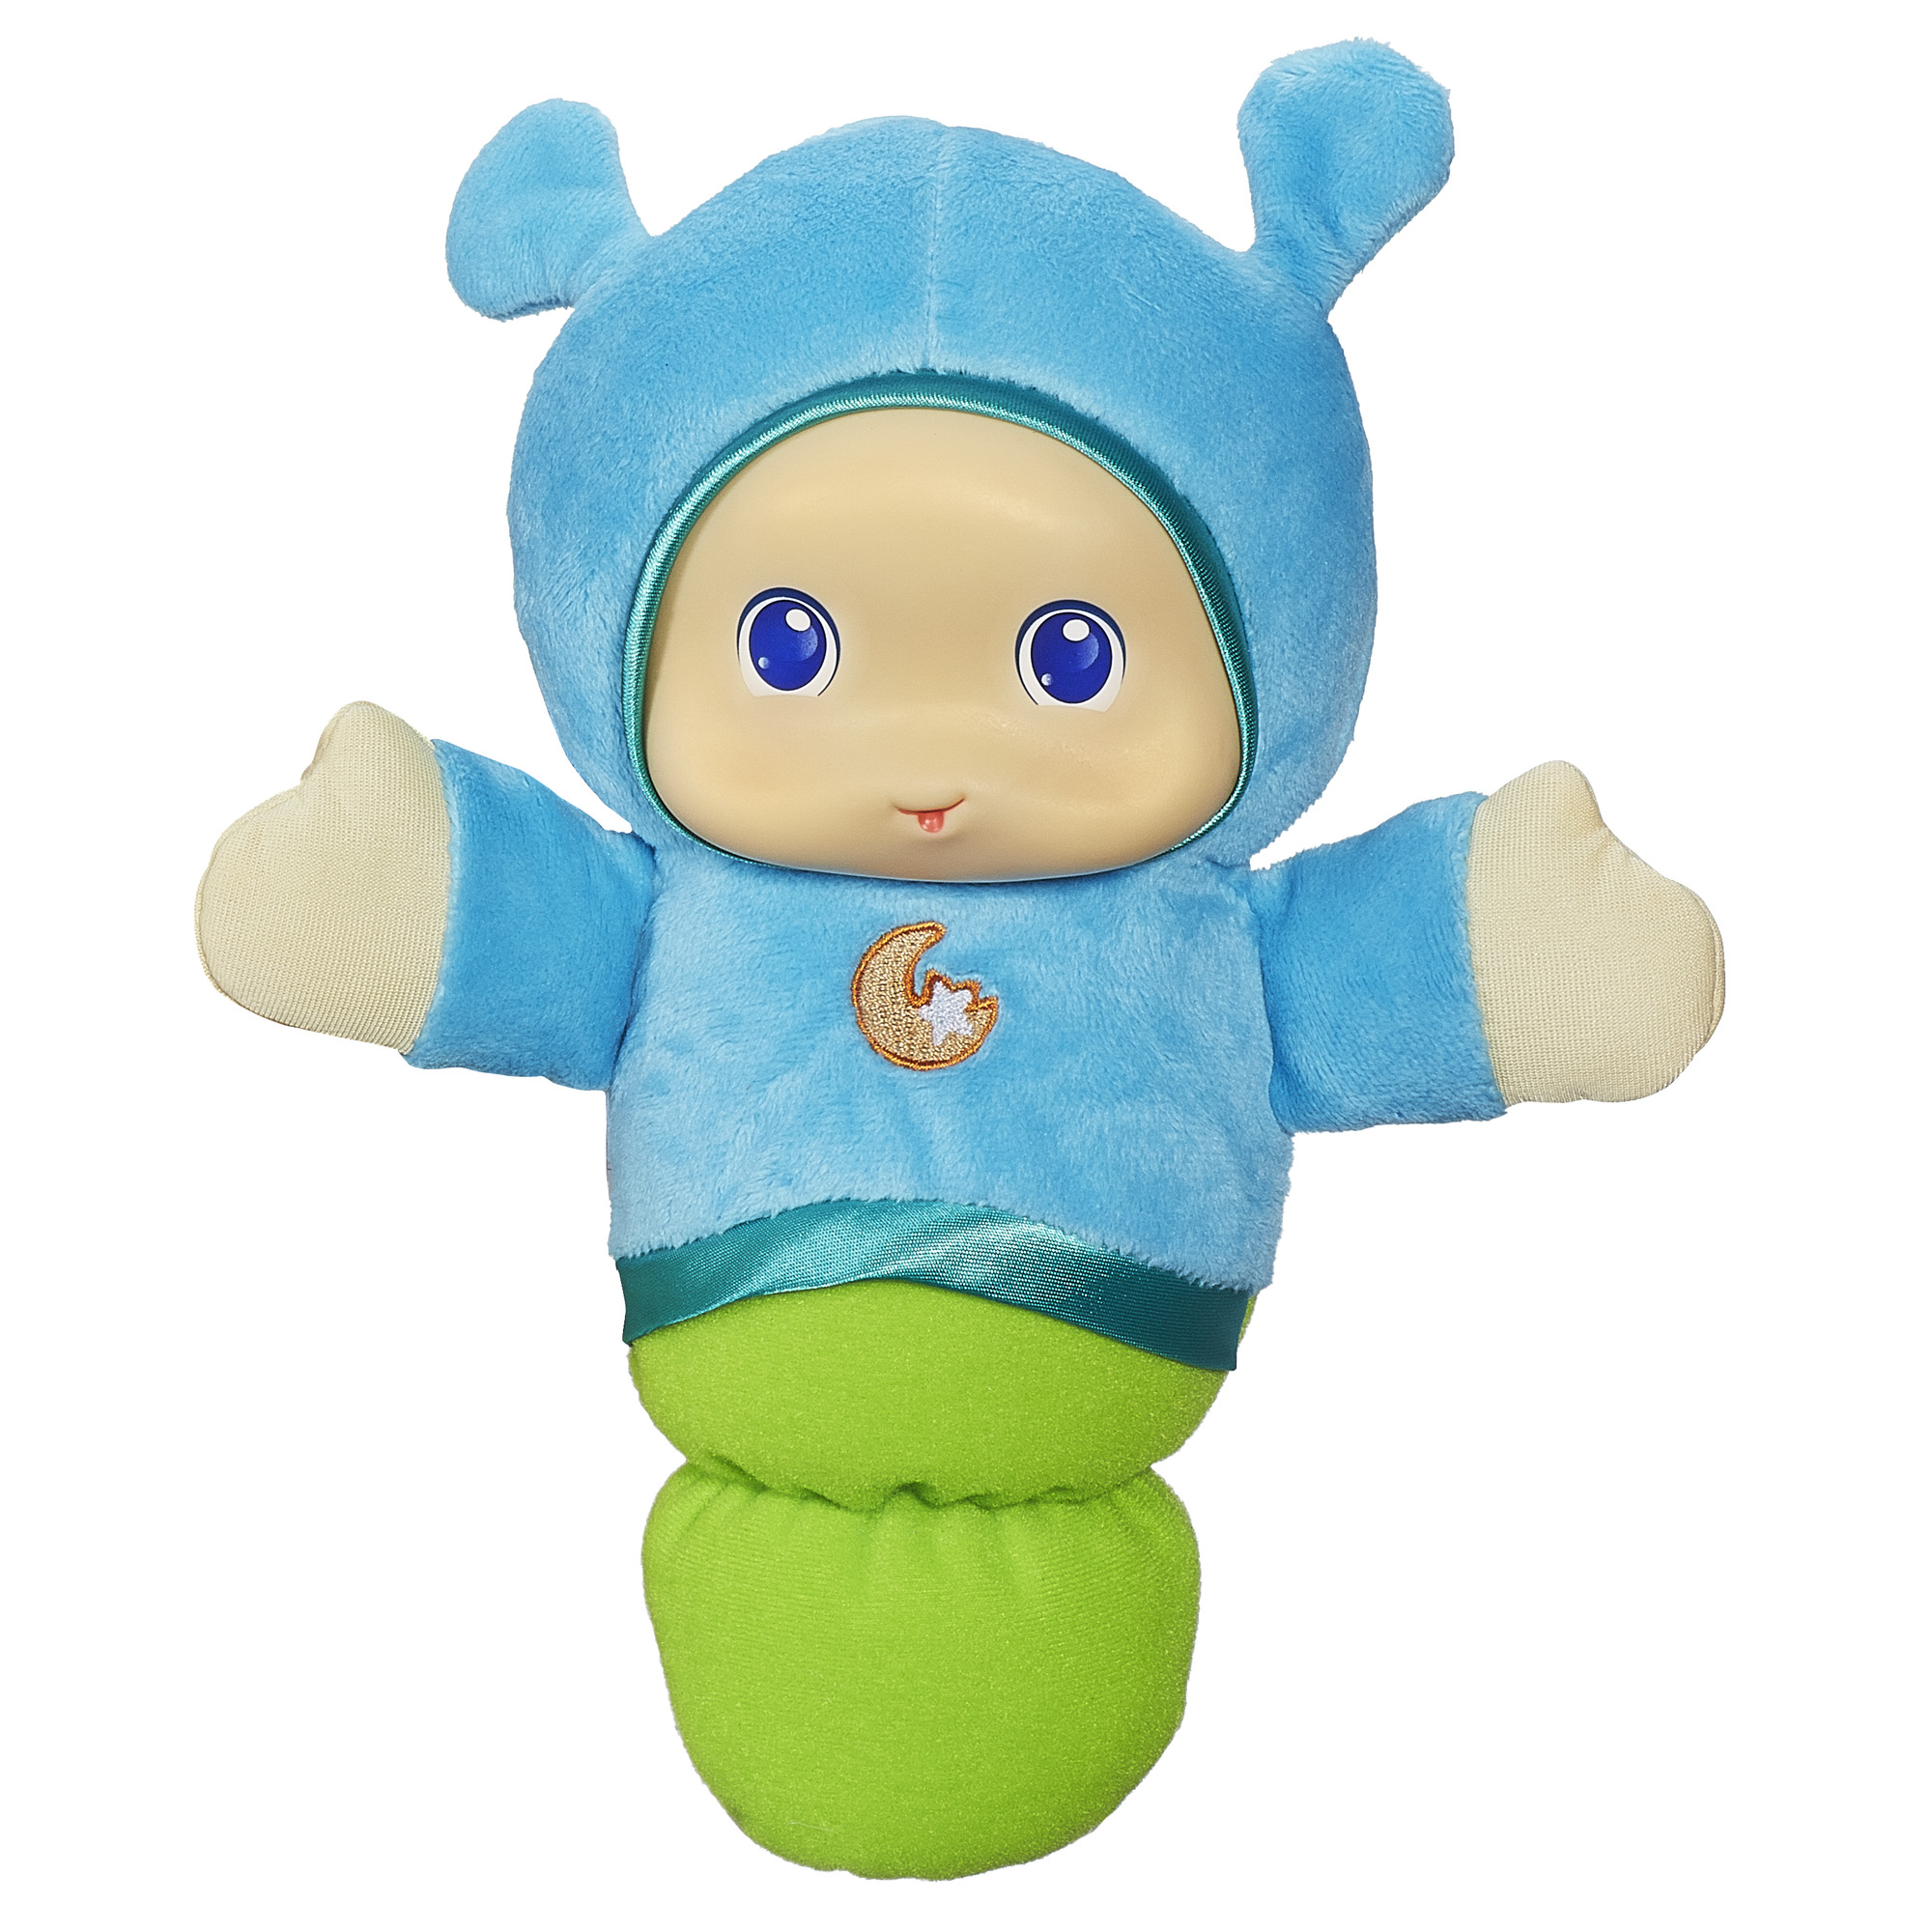 Playskool Lullaby Gloworm Blue by Playskool